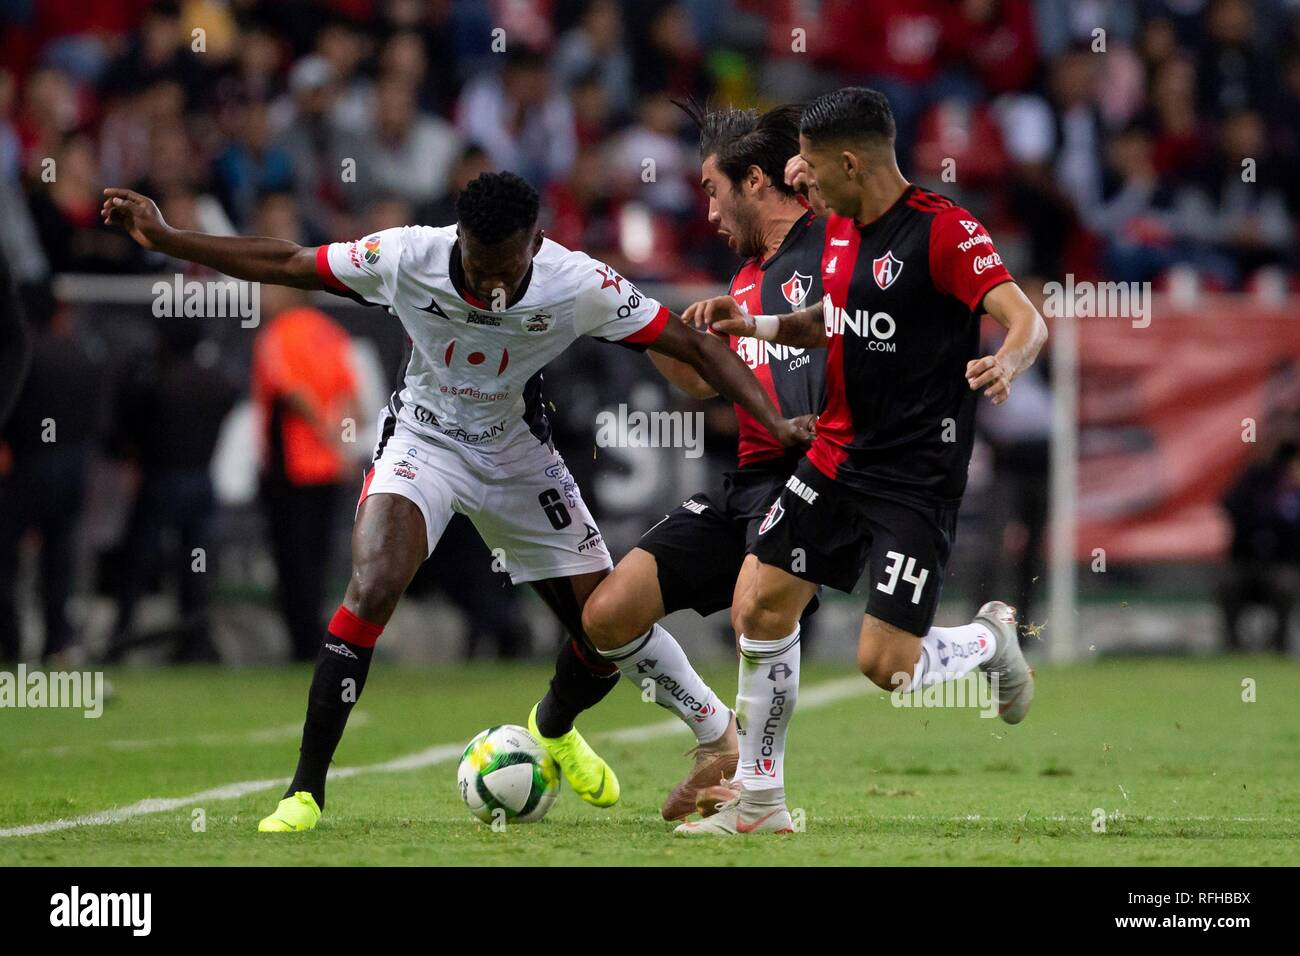 Guadalajara, Mexico. 25th January 2019. Juan Vigon (C) and Irving Zurita (R) of Atlas vies for the ball against Felix Crisanto (L) of Lobos BUAP, during a game of the Mexican Tournament, in Jalisco Stadium, Guadalajara, Mexico, 25 January 2019. EFE/ Francisco Guasco Credit: EFE News Agency/Alamy Live News - Stock Image